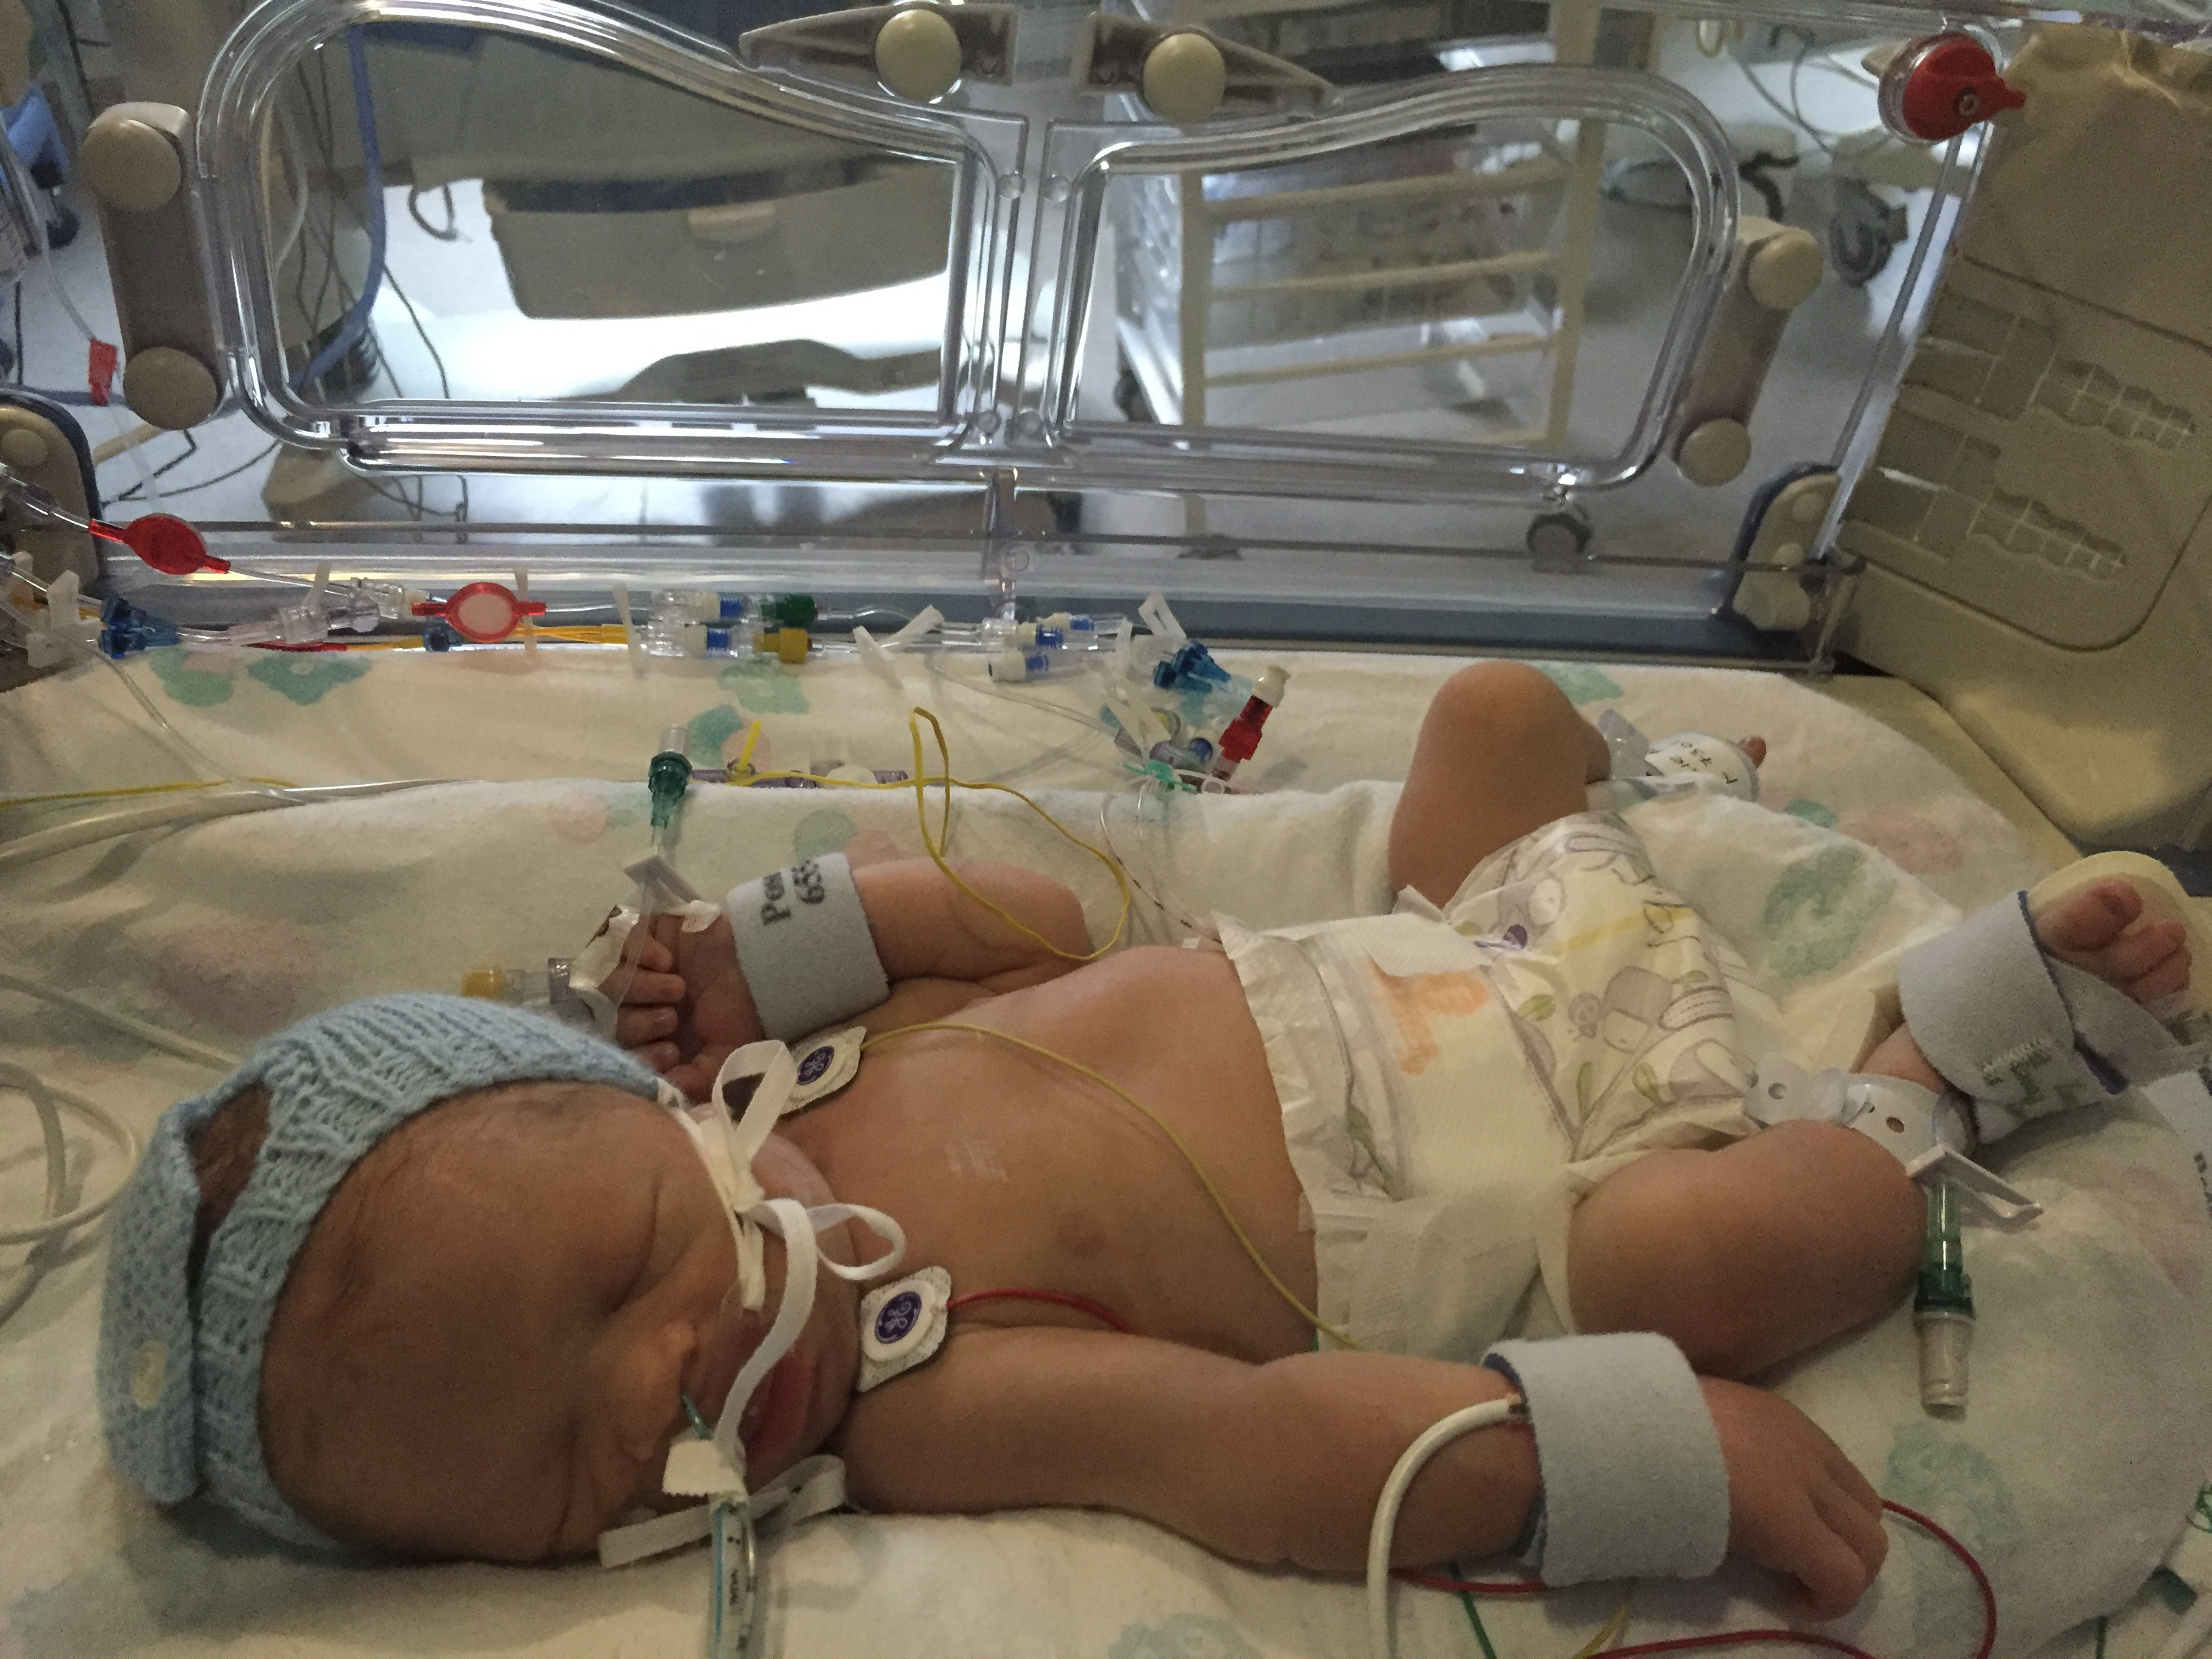 My wife battled cancer while my daughter was in SCBU